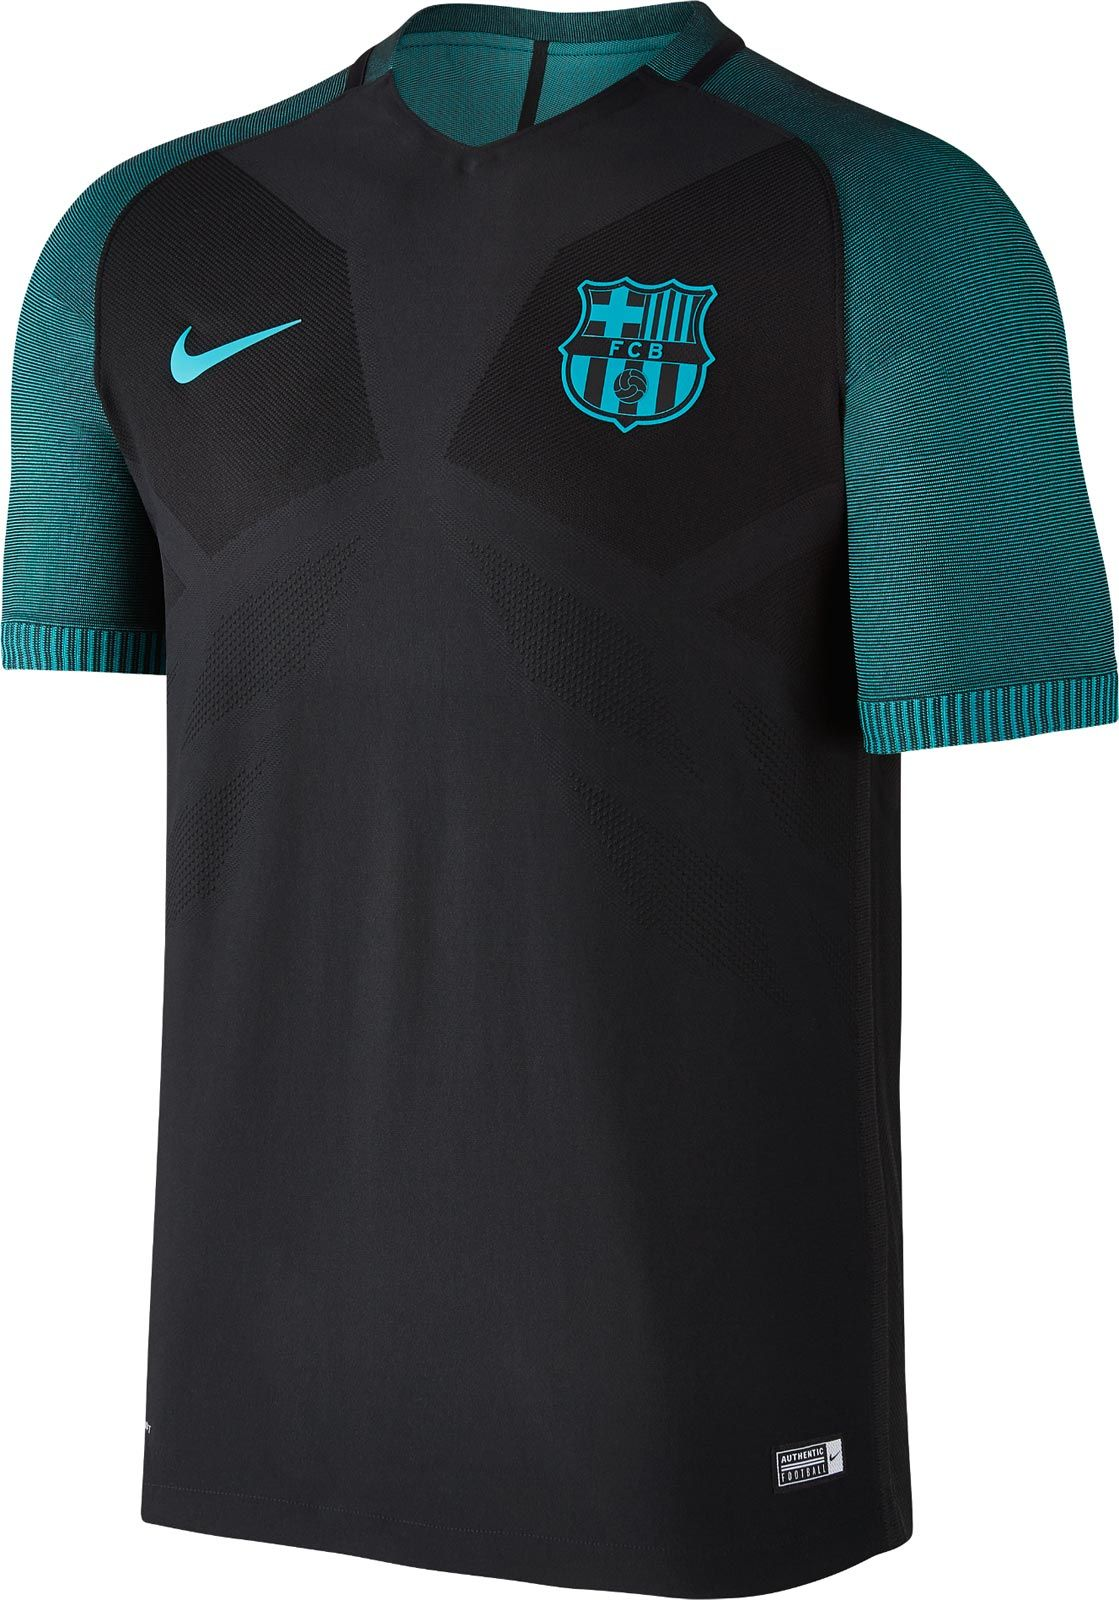 64653415f300d The Barcelona 16-17 Champions League training kit introduces a clean design  in…